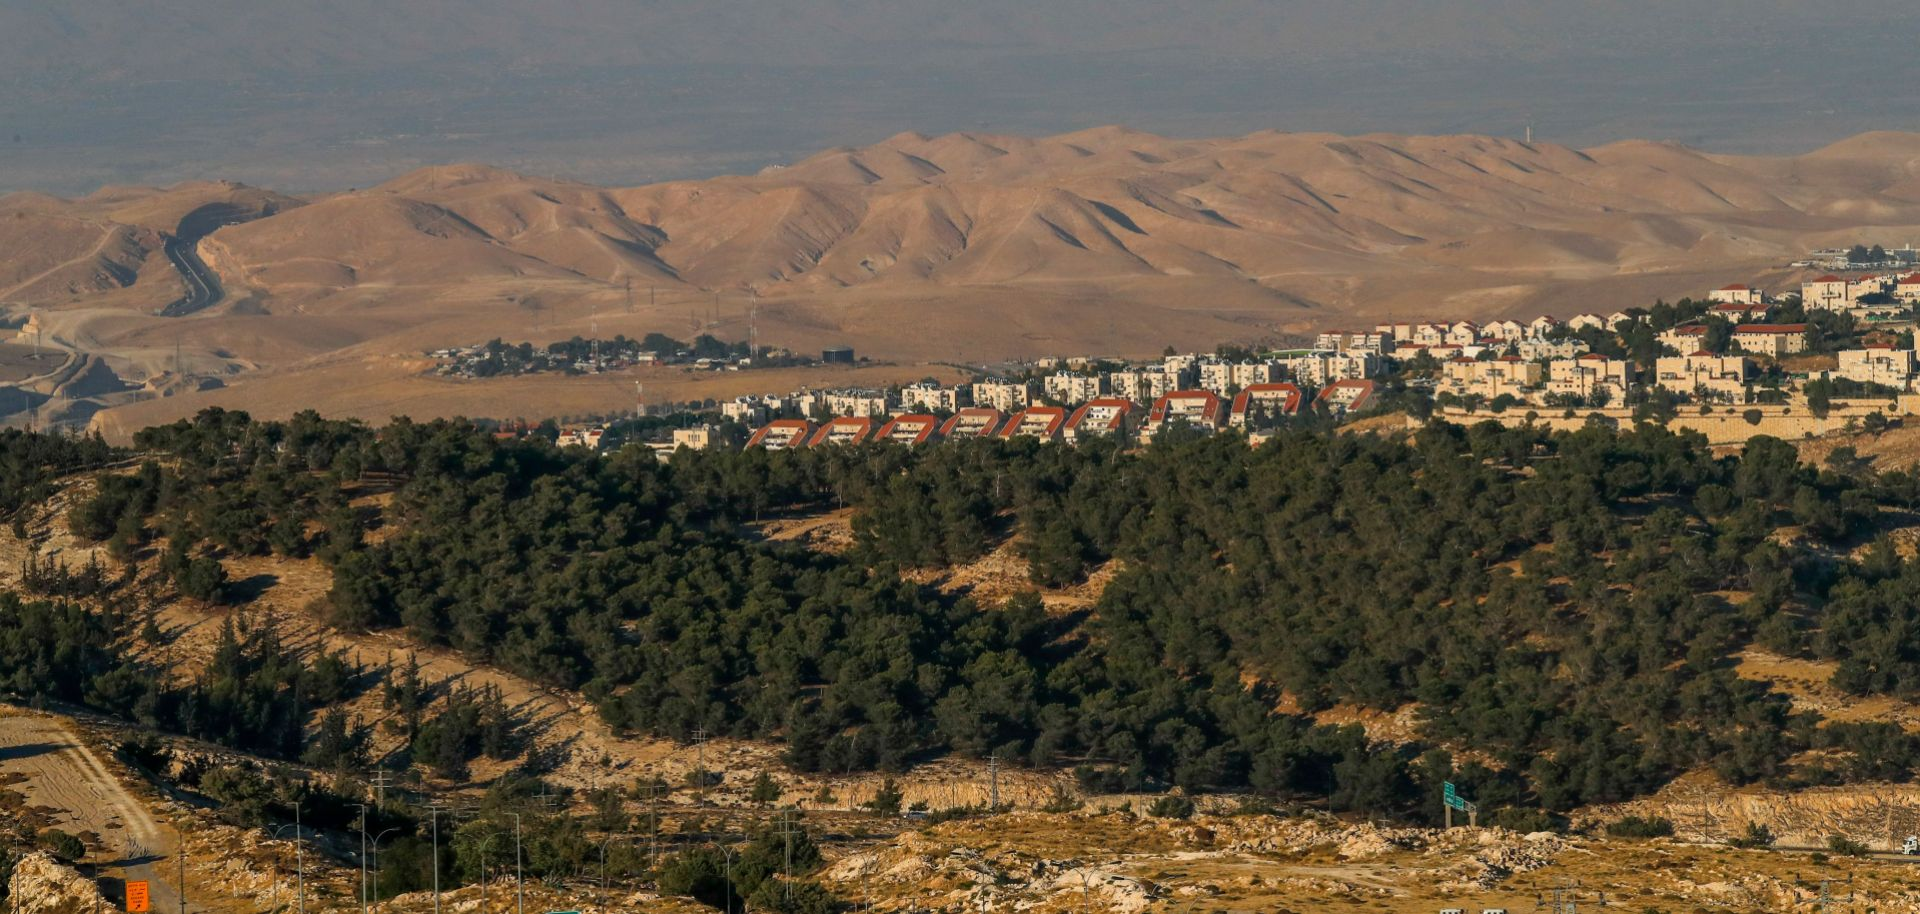 The Israeli settlement of Ma'ale Adumim is seen in the background of the photo of the West Bank's E1 corridor taken on June 30, 2020.